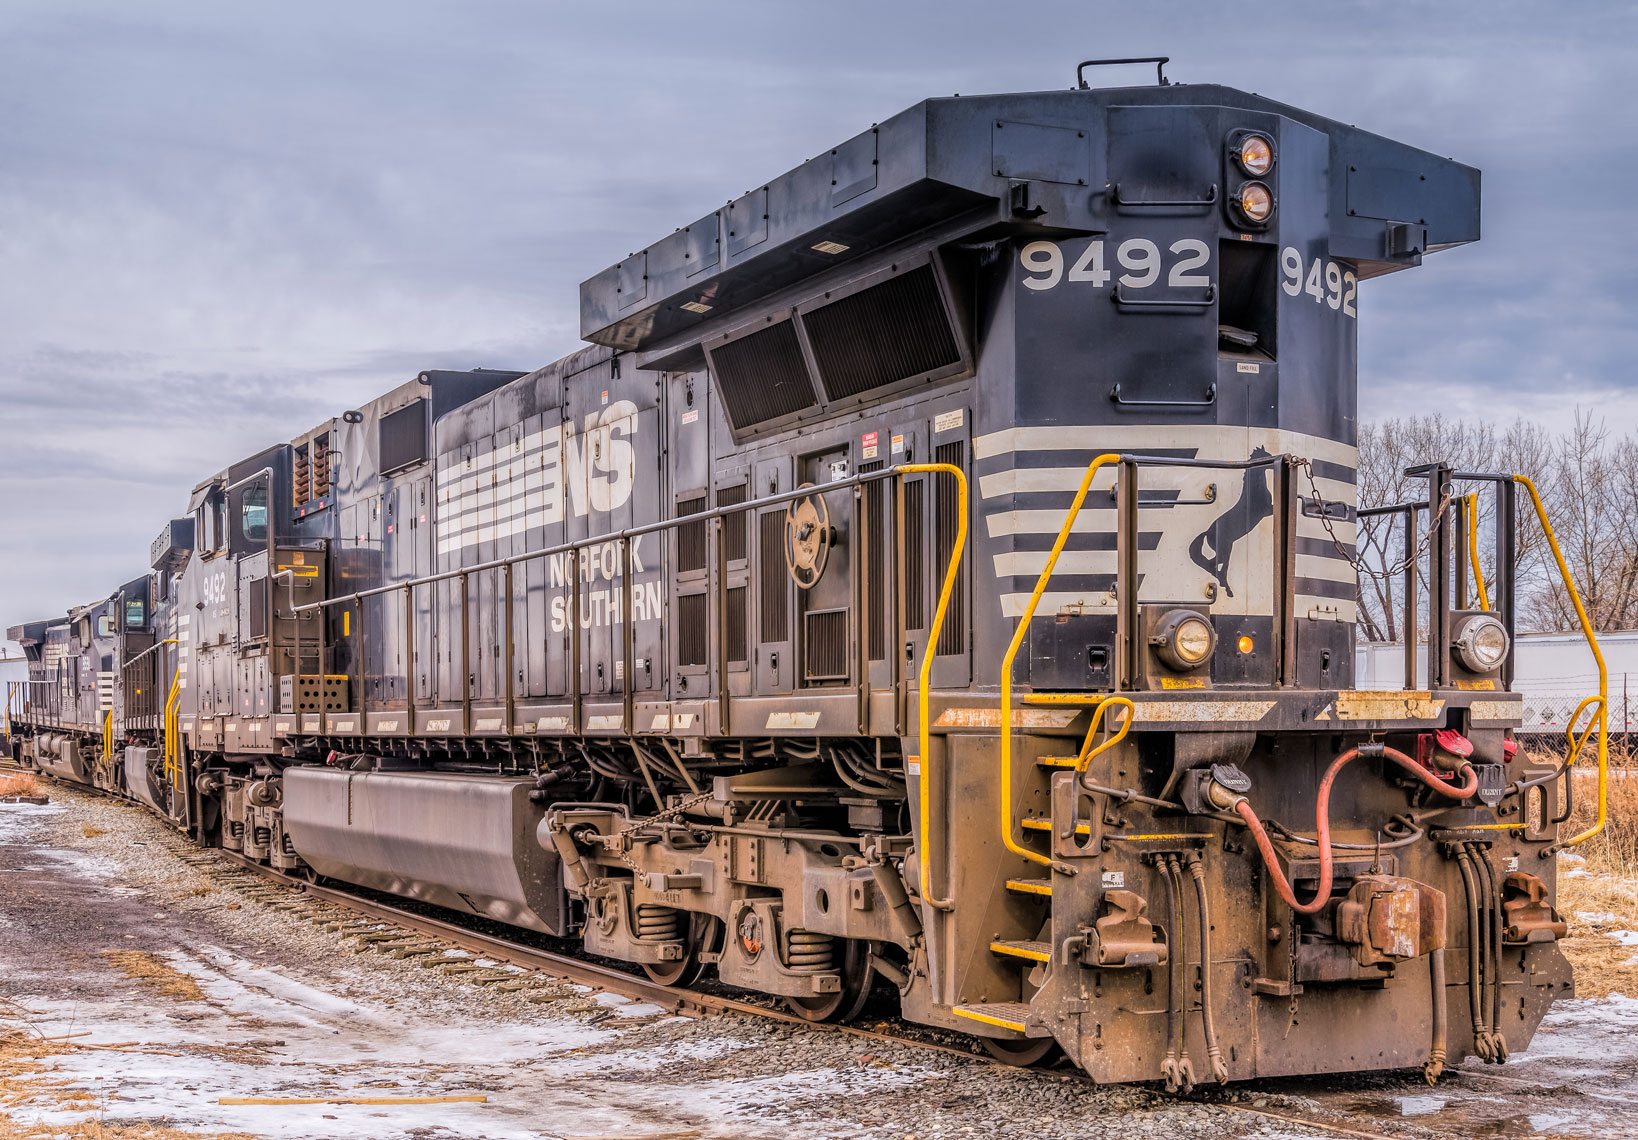 21-Norfolk-Southern-9492-At-Kearny